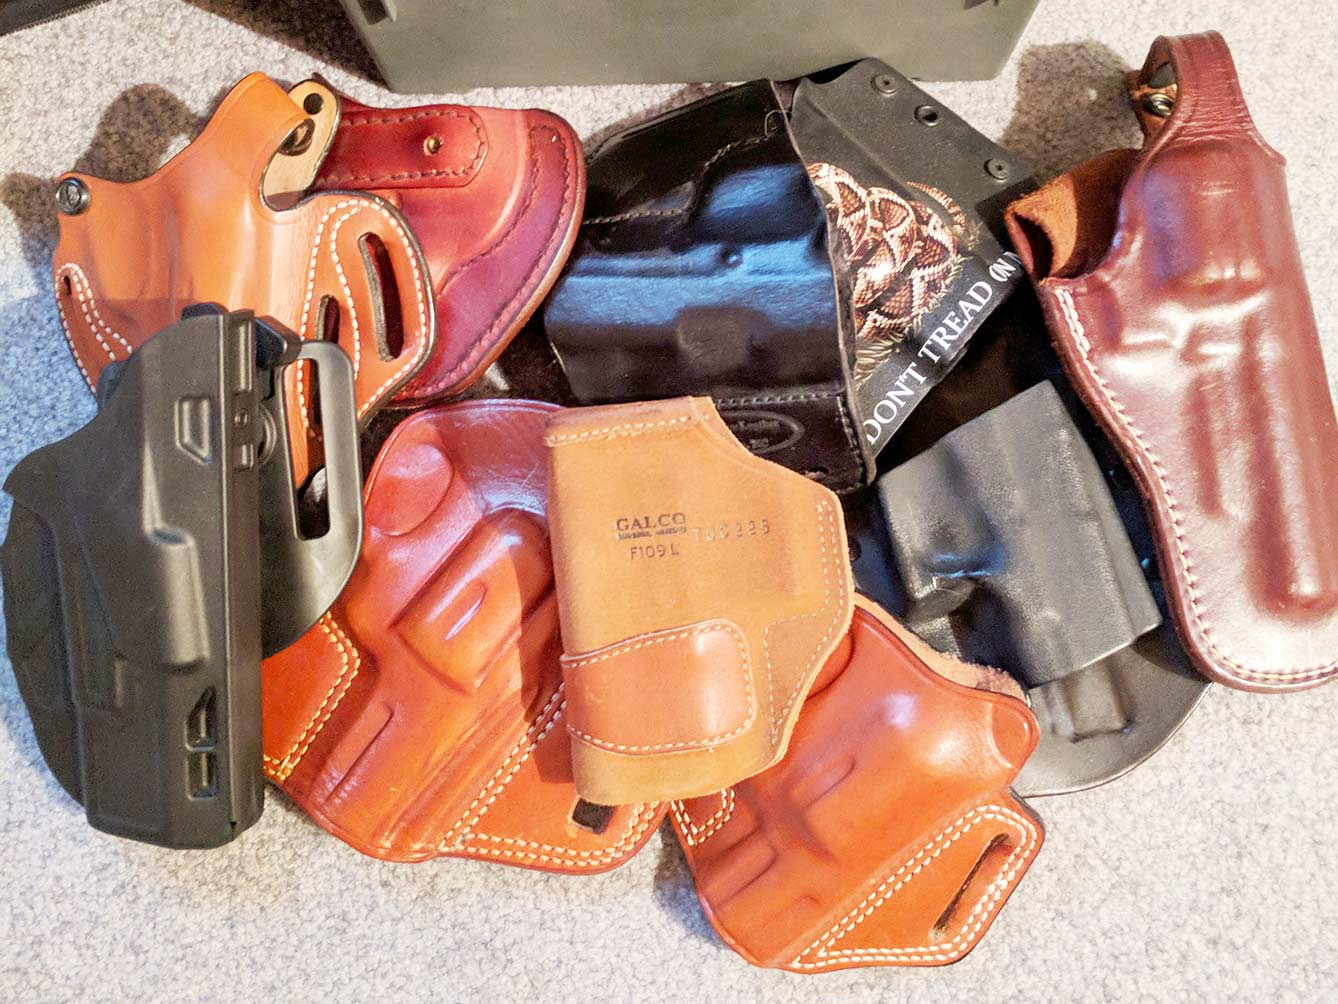 The Quest for The Right CCW Holster